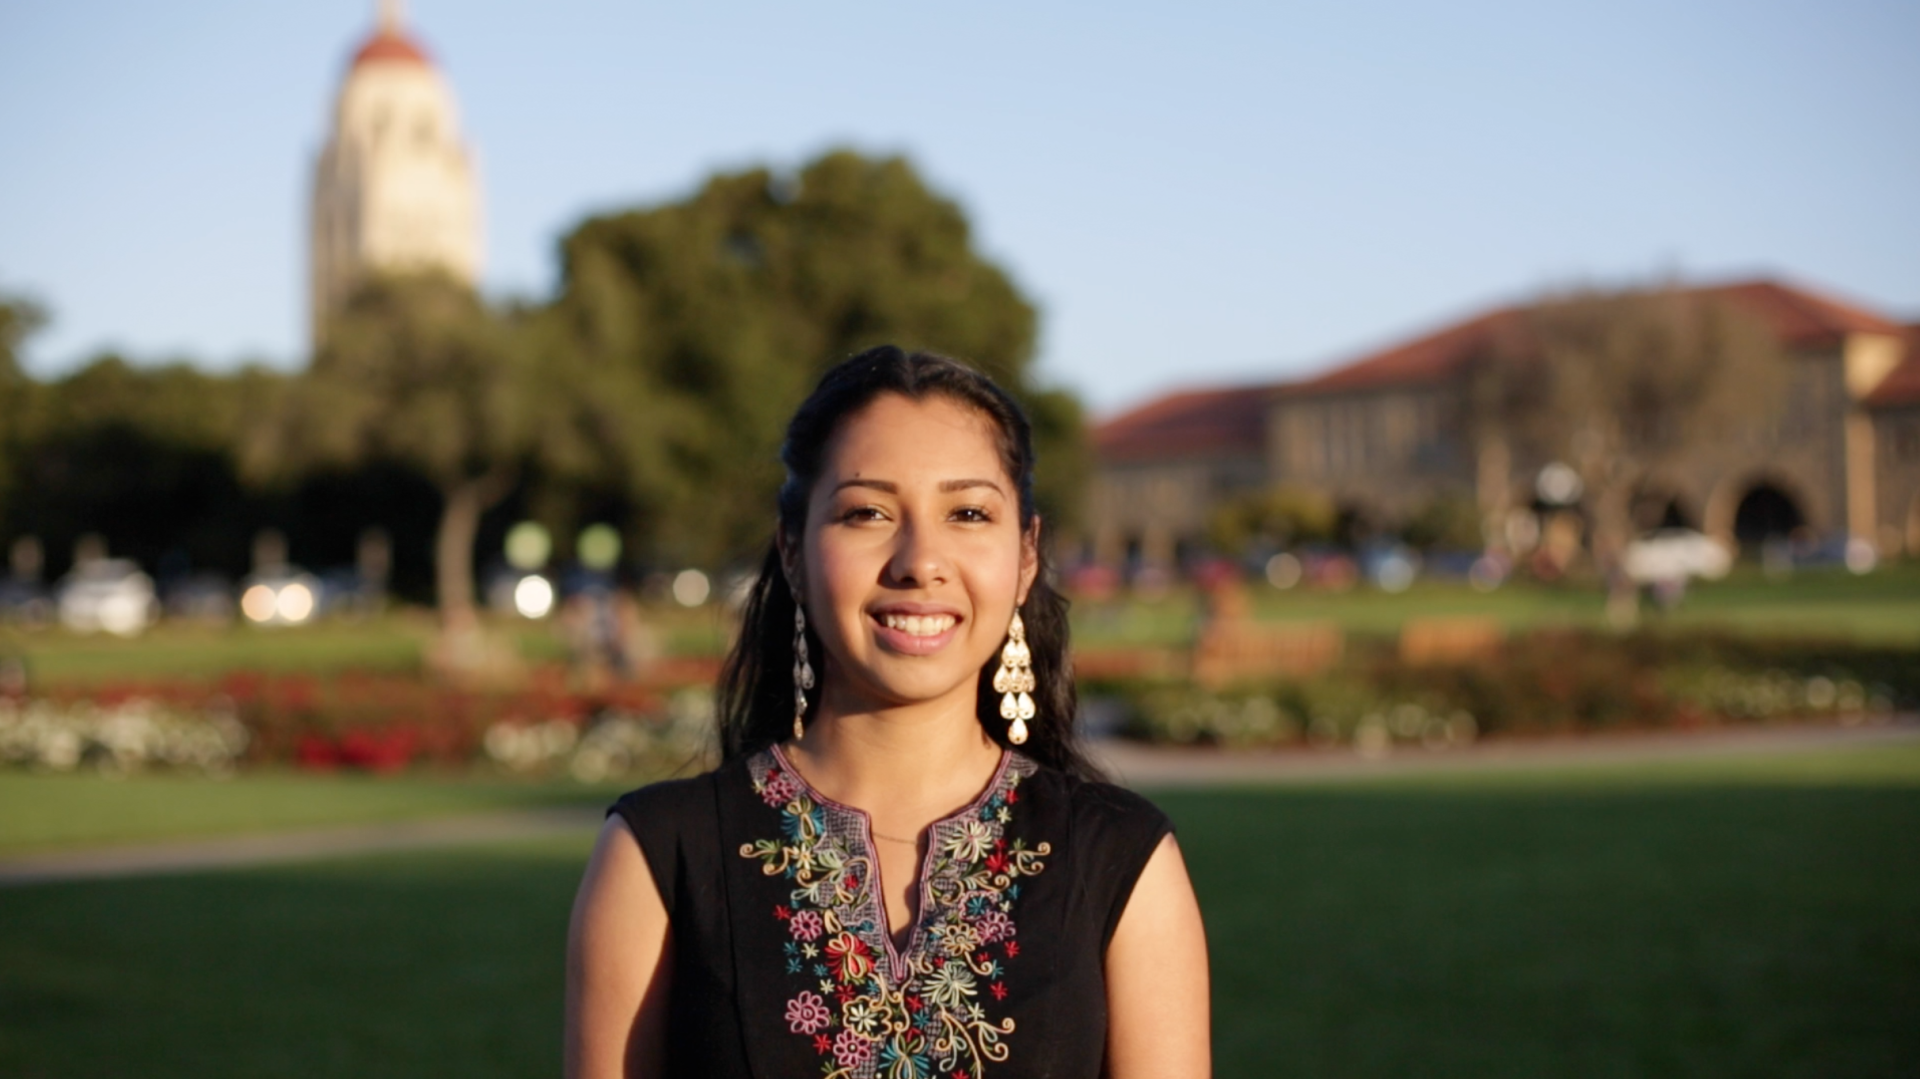 Sarahi Espinoza created a scholarship network in the form of an app to help undocumented students find college scholarships.